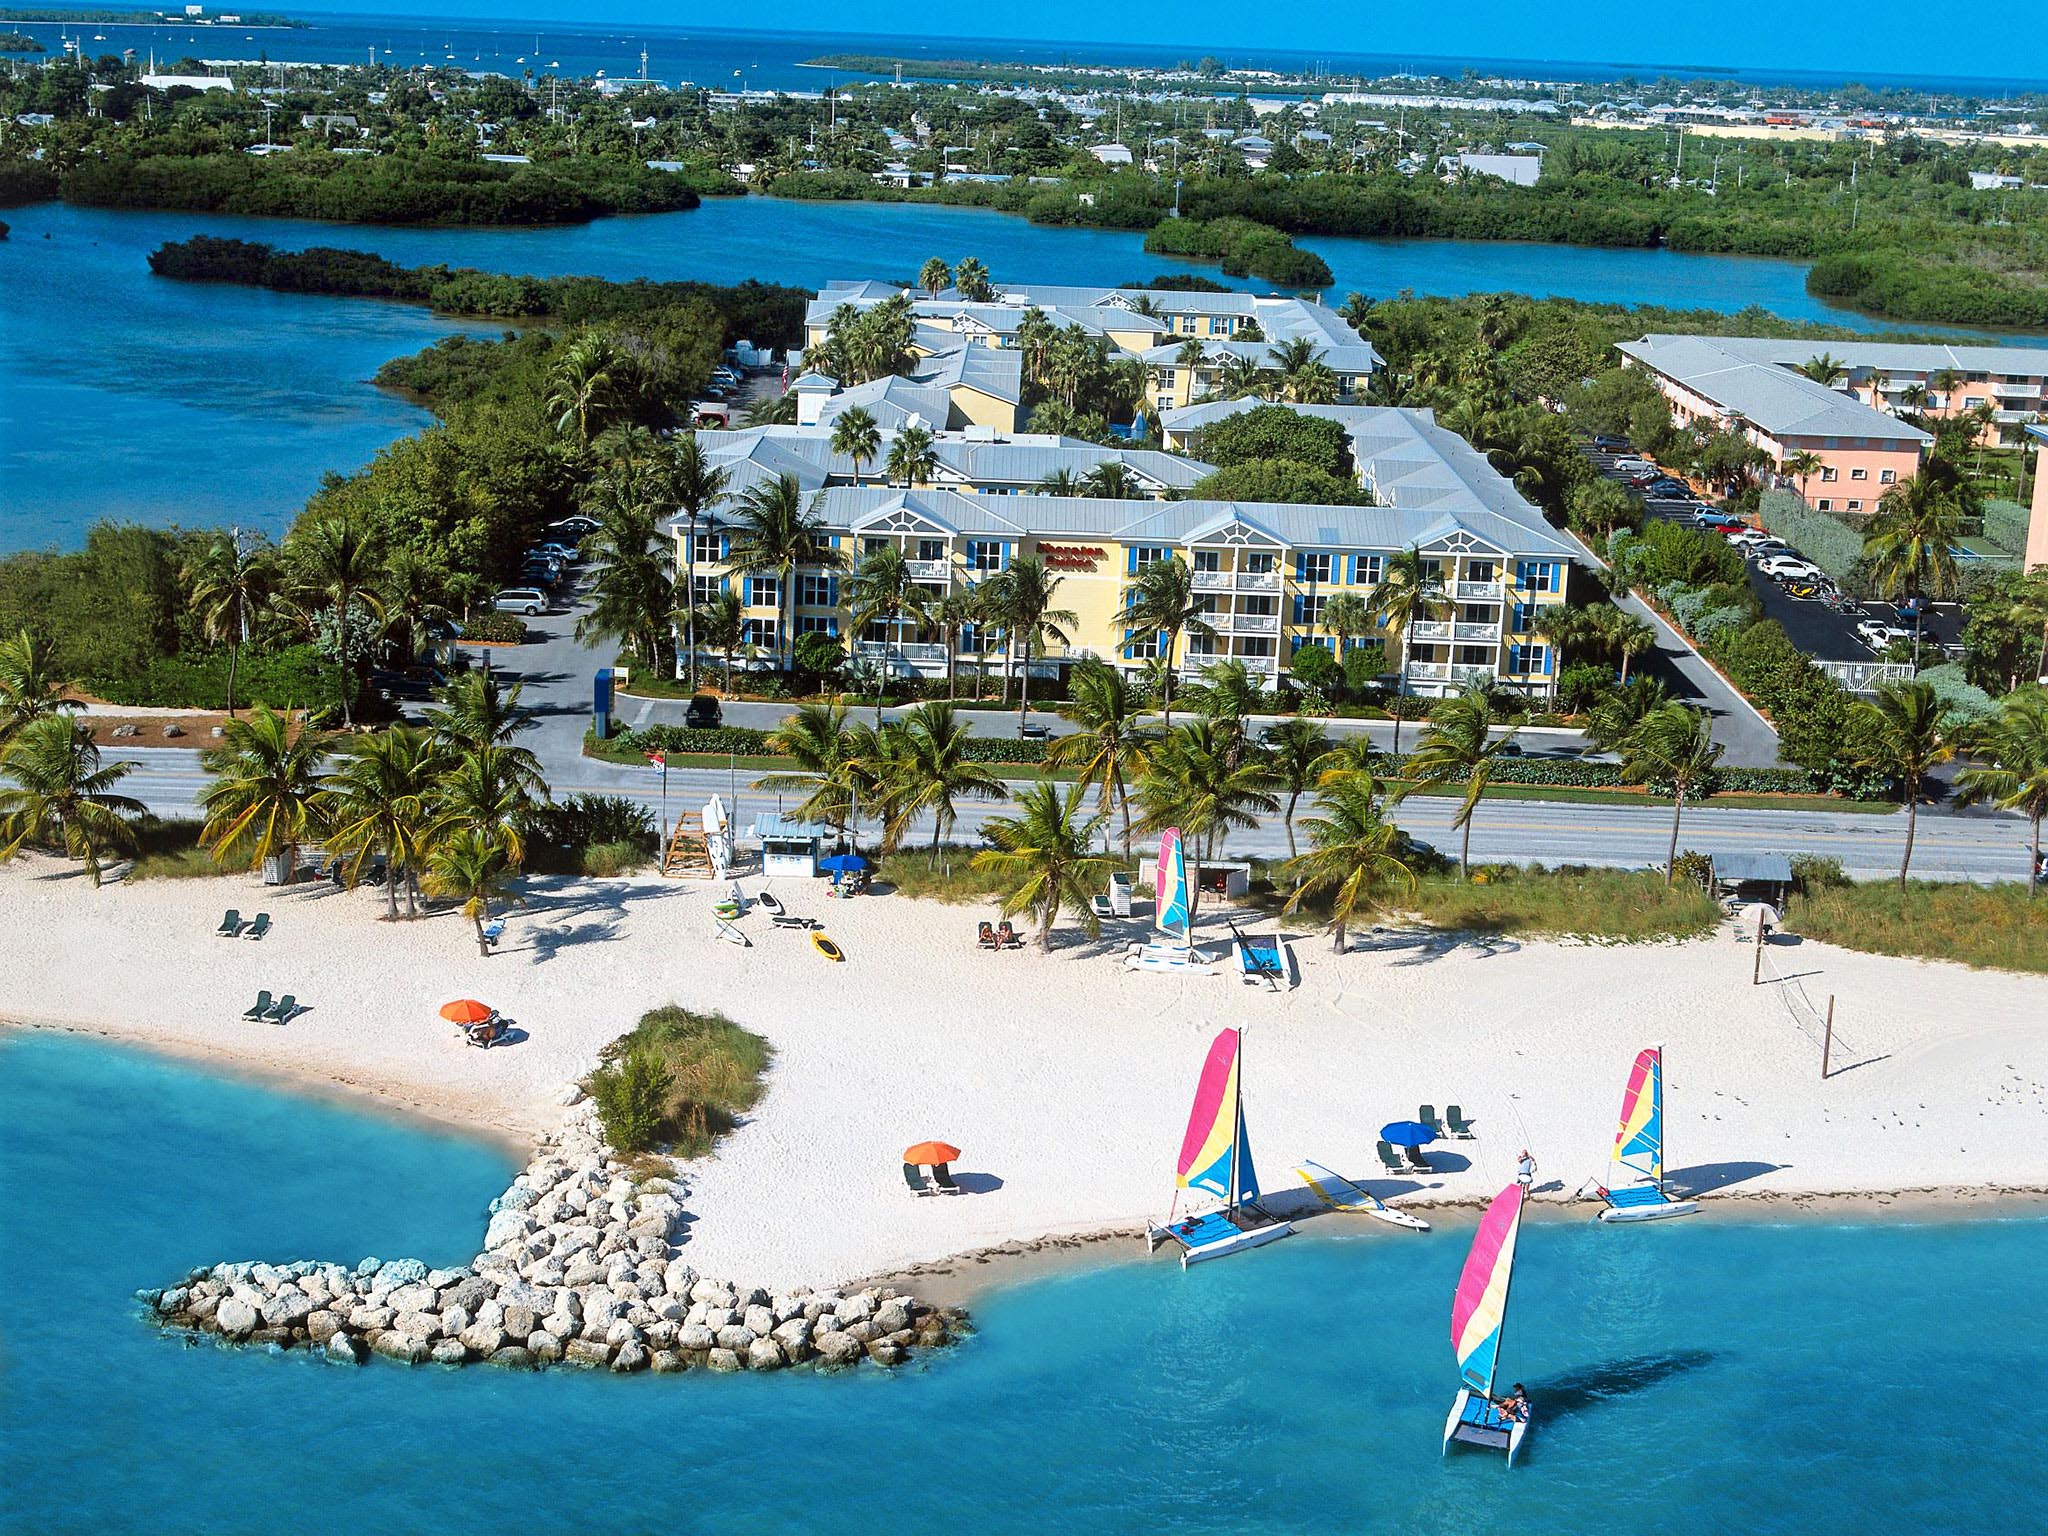 2 bedroom suites in key west fl. 2 bedroom suites in key west fl